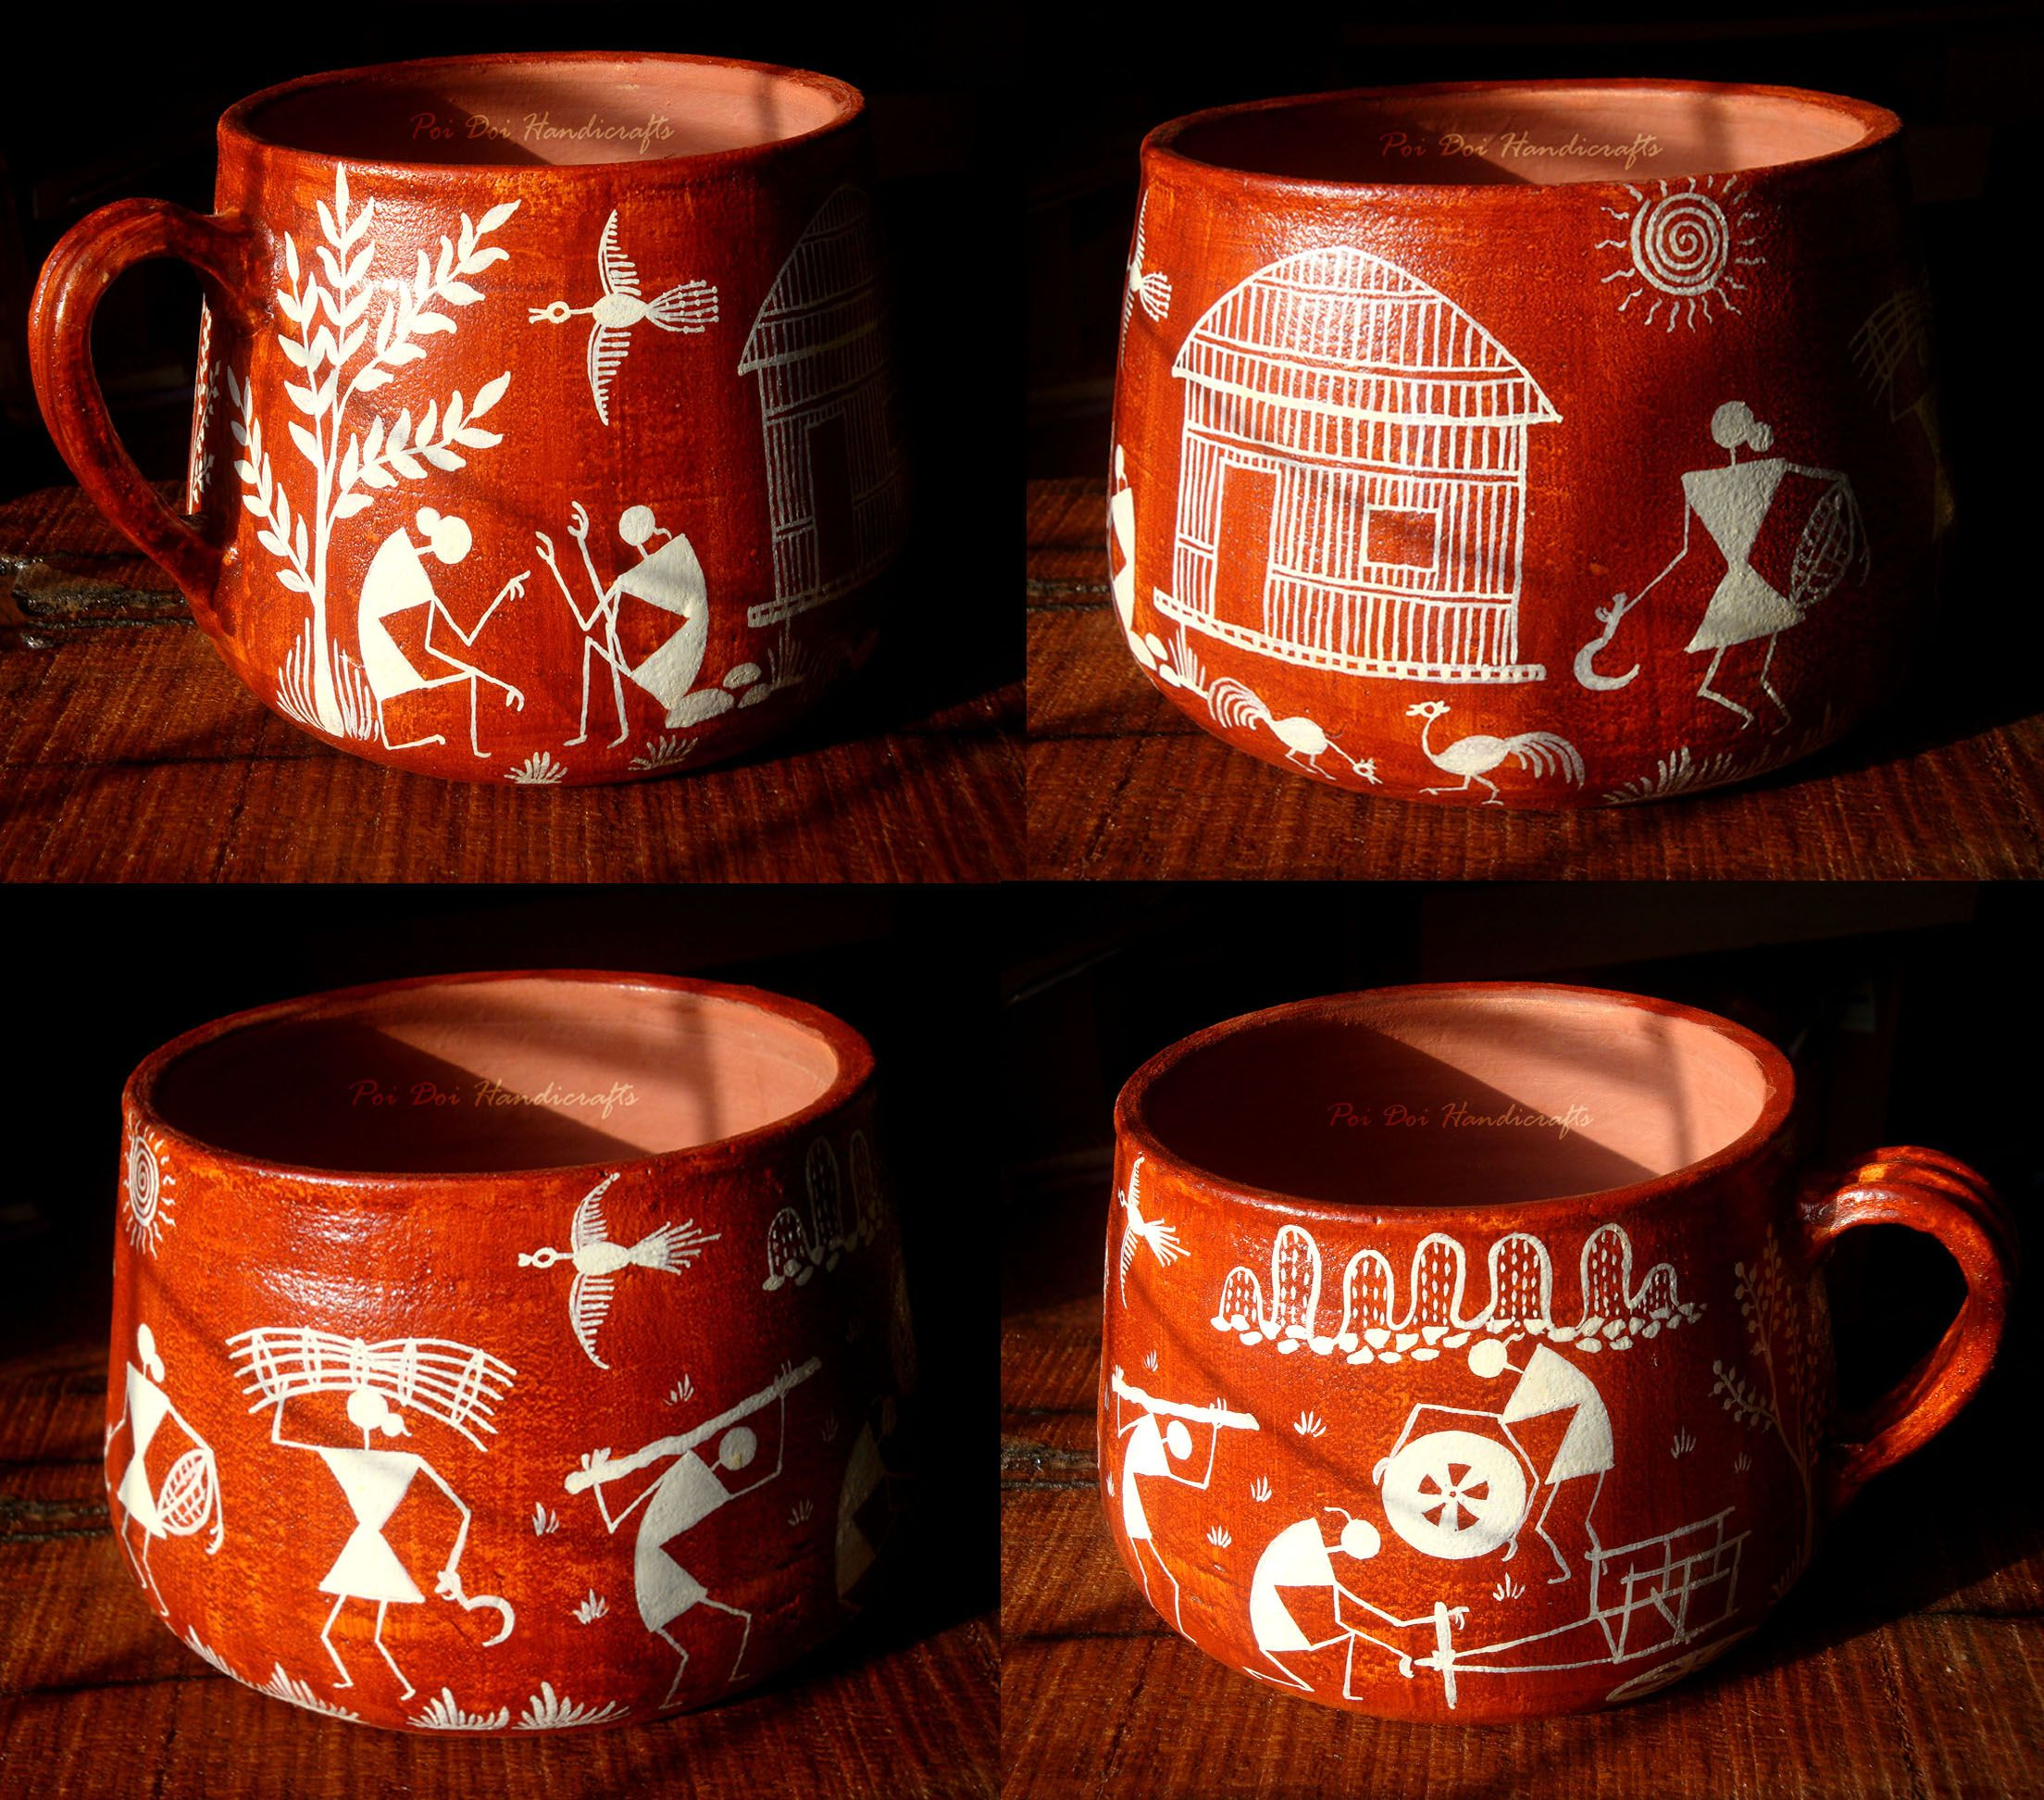 Warli is an ancient Indian tribal art form that originated in Maharashtra. Warli paintings portrayed the day to day activities of the Warli tribe like harvesting, hunting, fishing, farming, animals, dances etc.